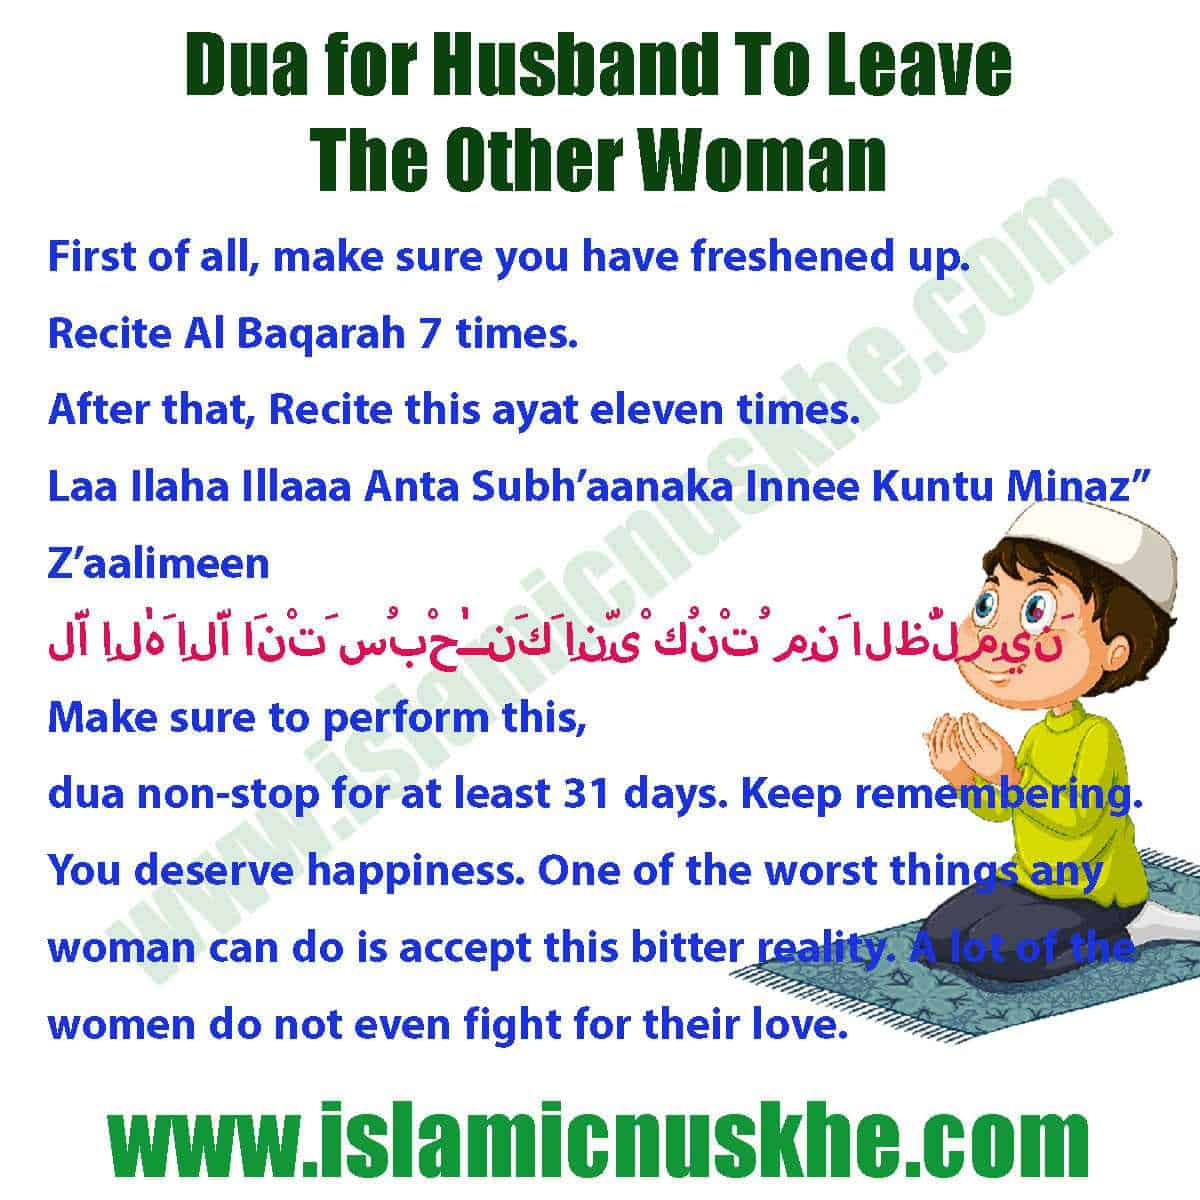 Here is Dua for Husband To Leave The Other Woman Step by Step